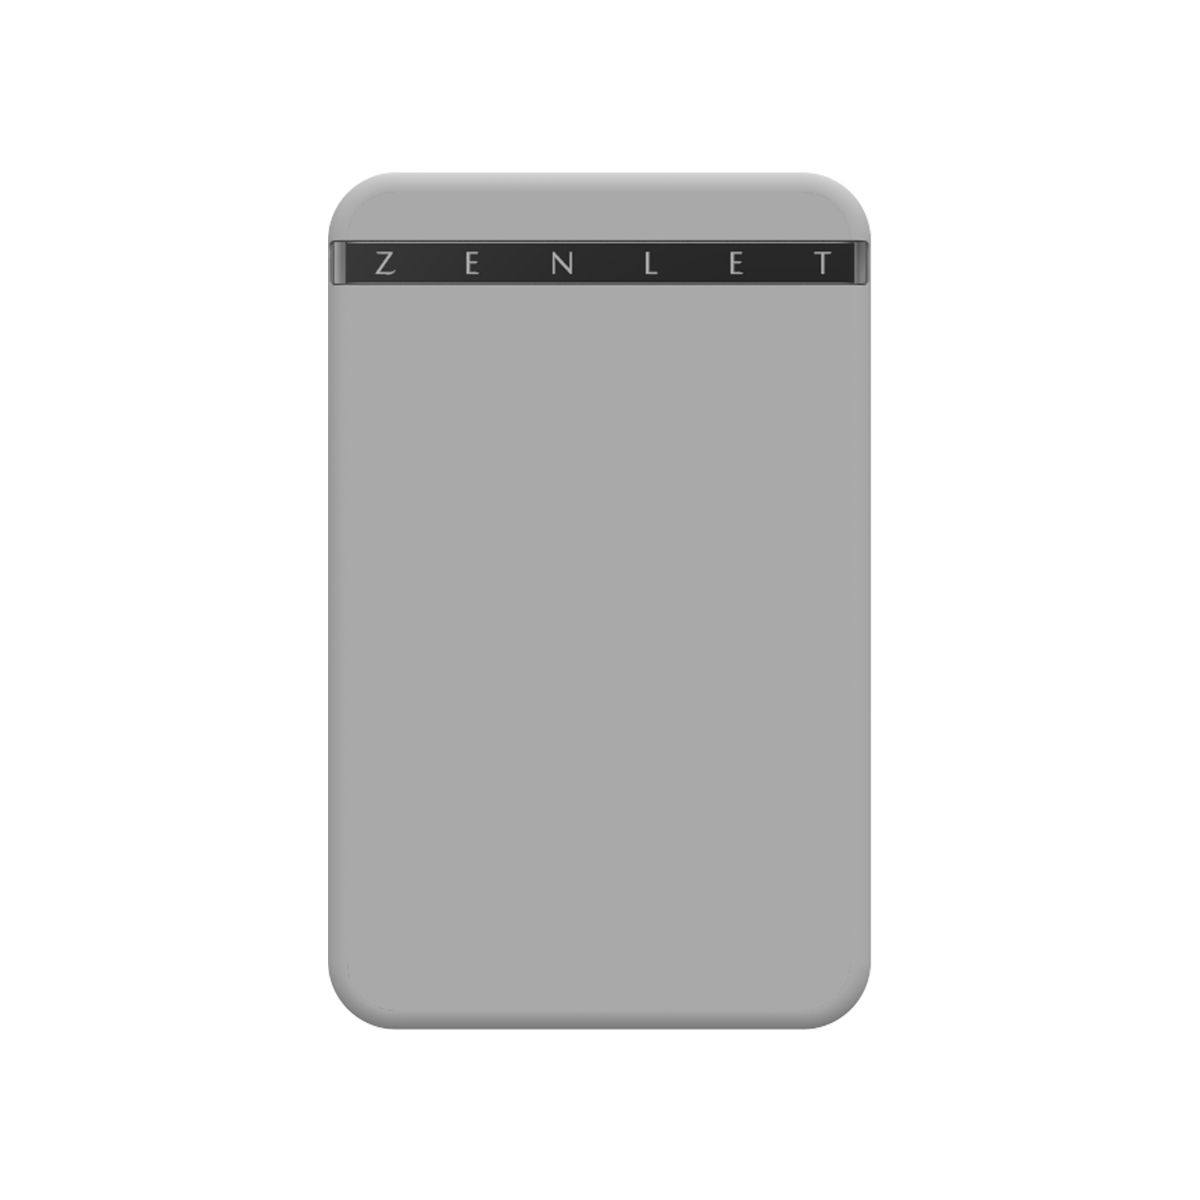 ZENLET The Ingenious Wallet - Grey